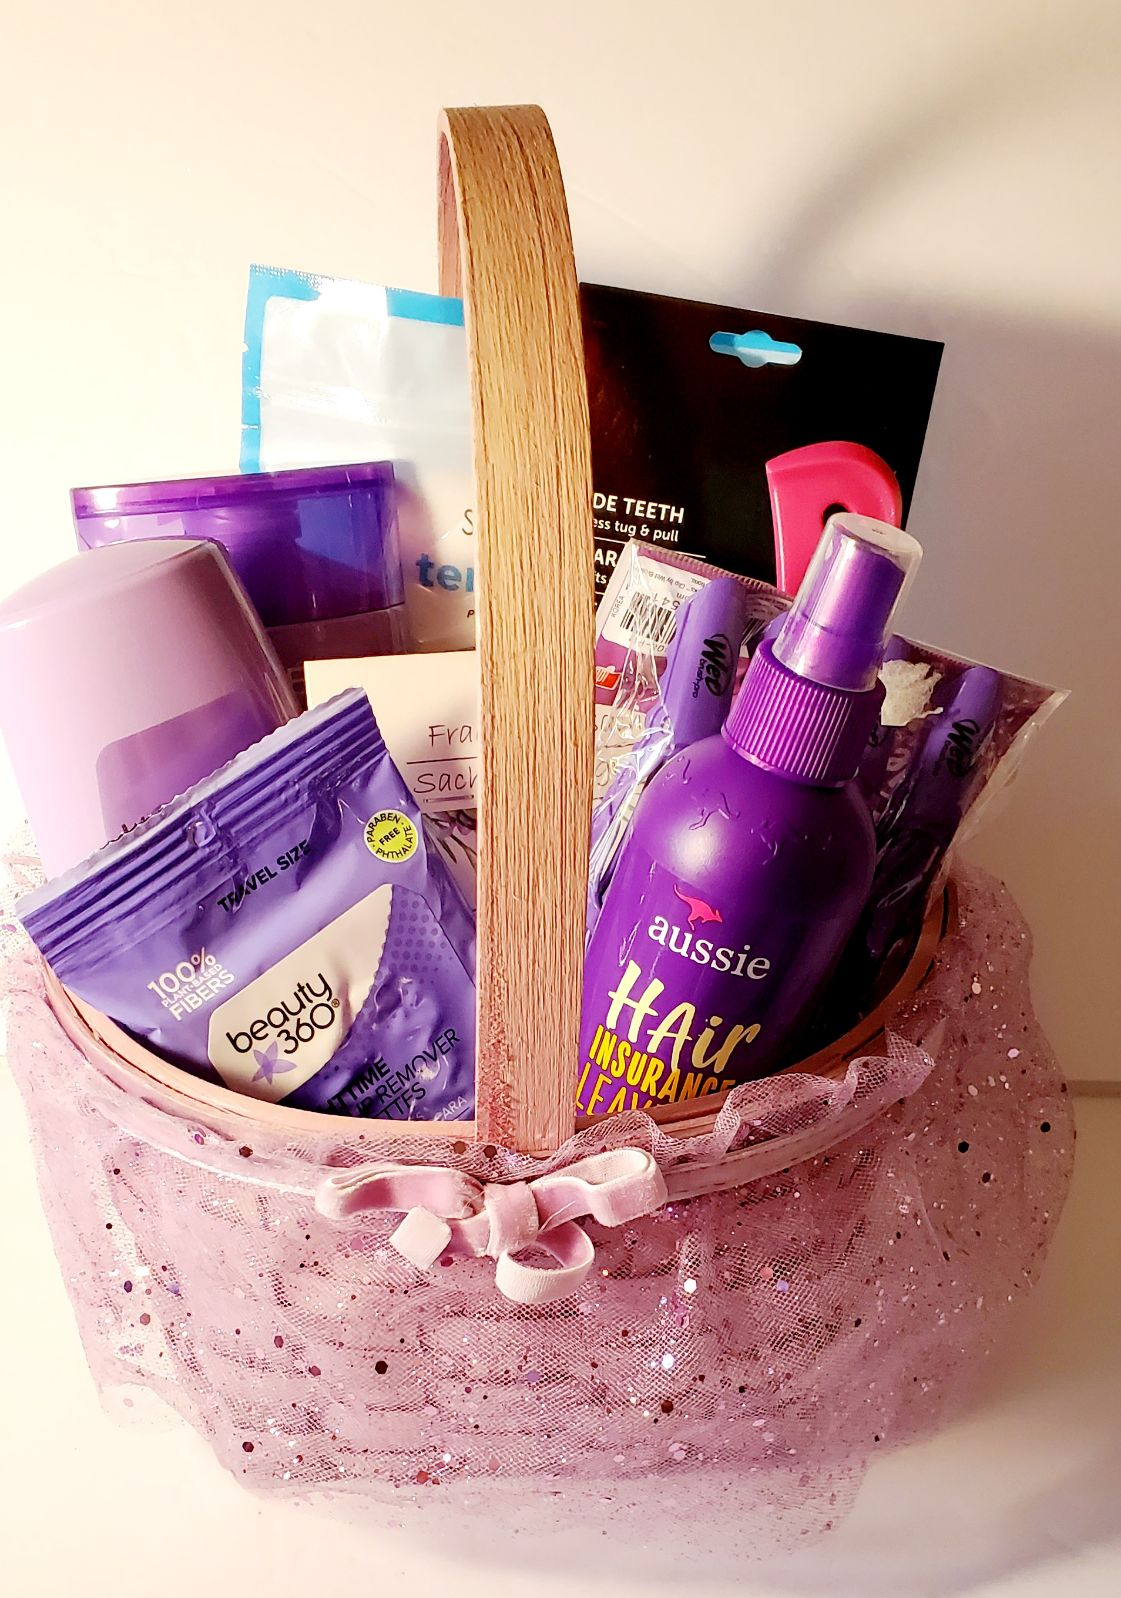 Loreal Hair Products AWESOME basket